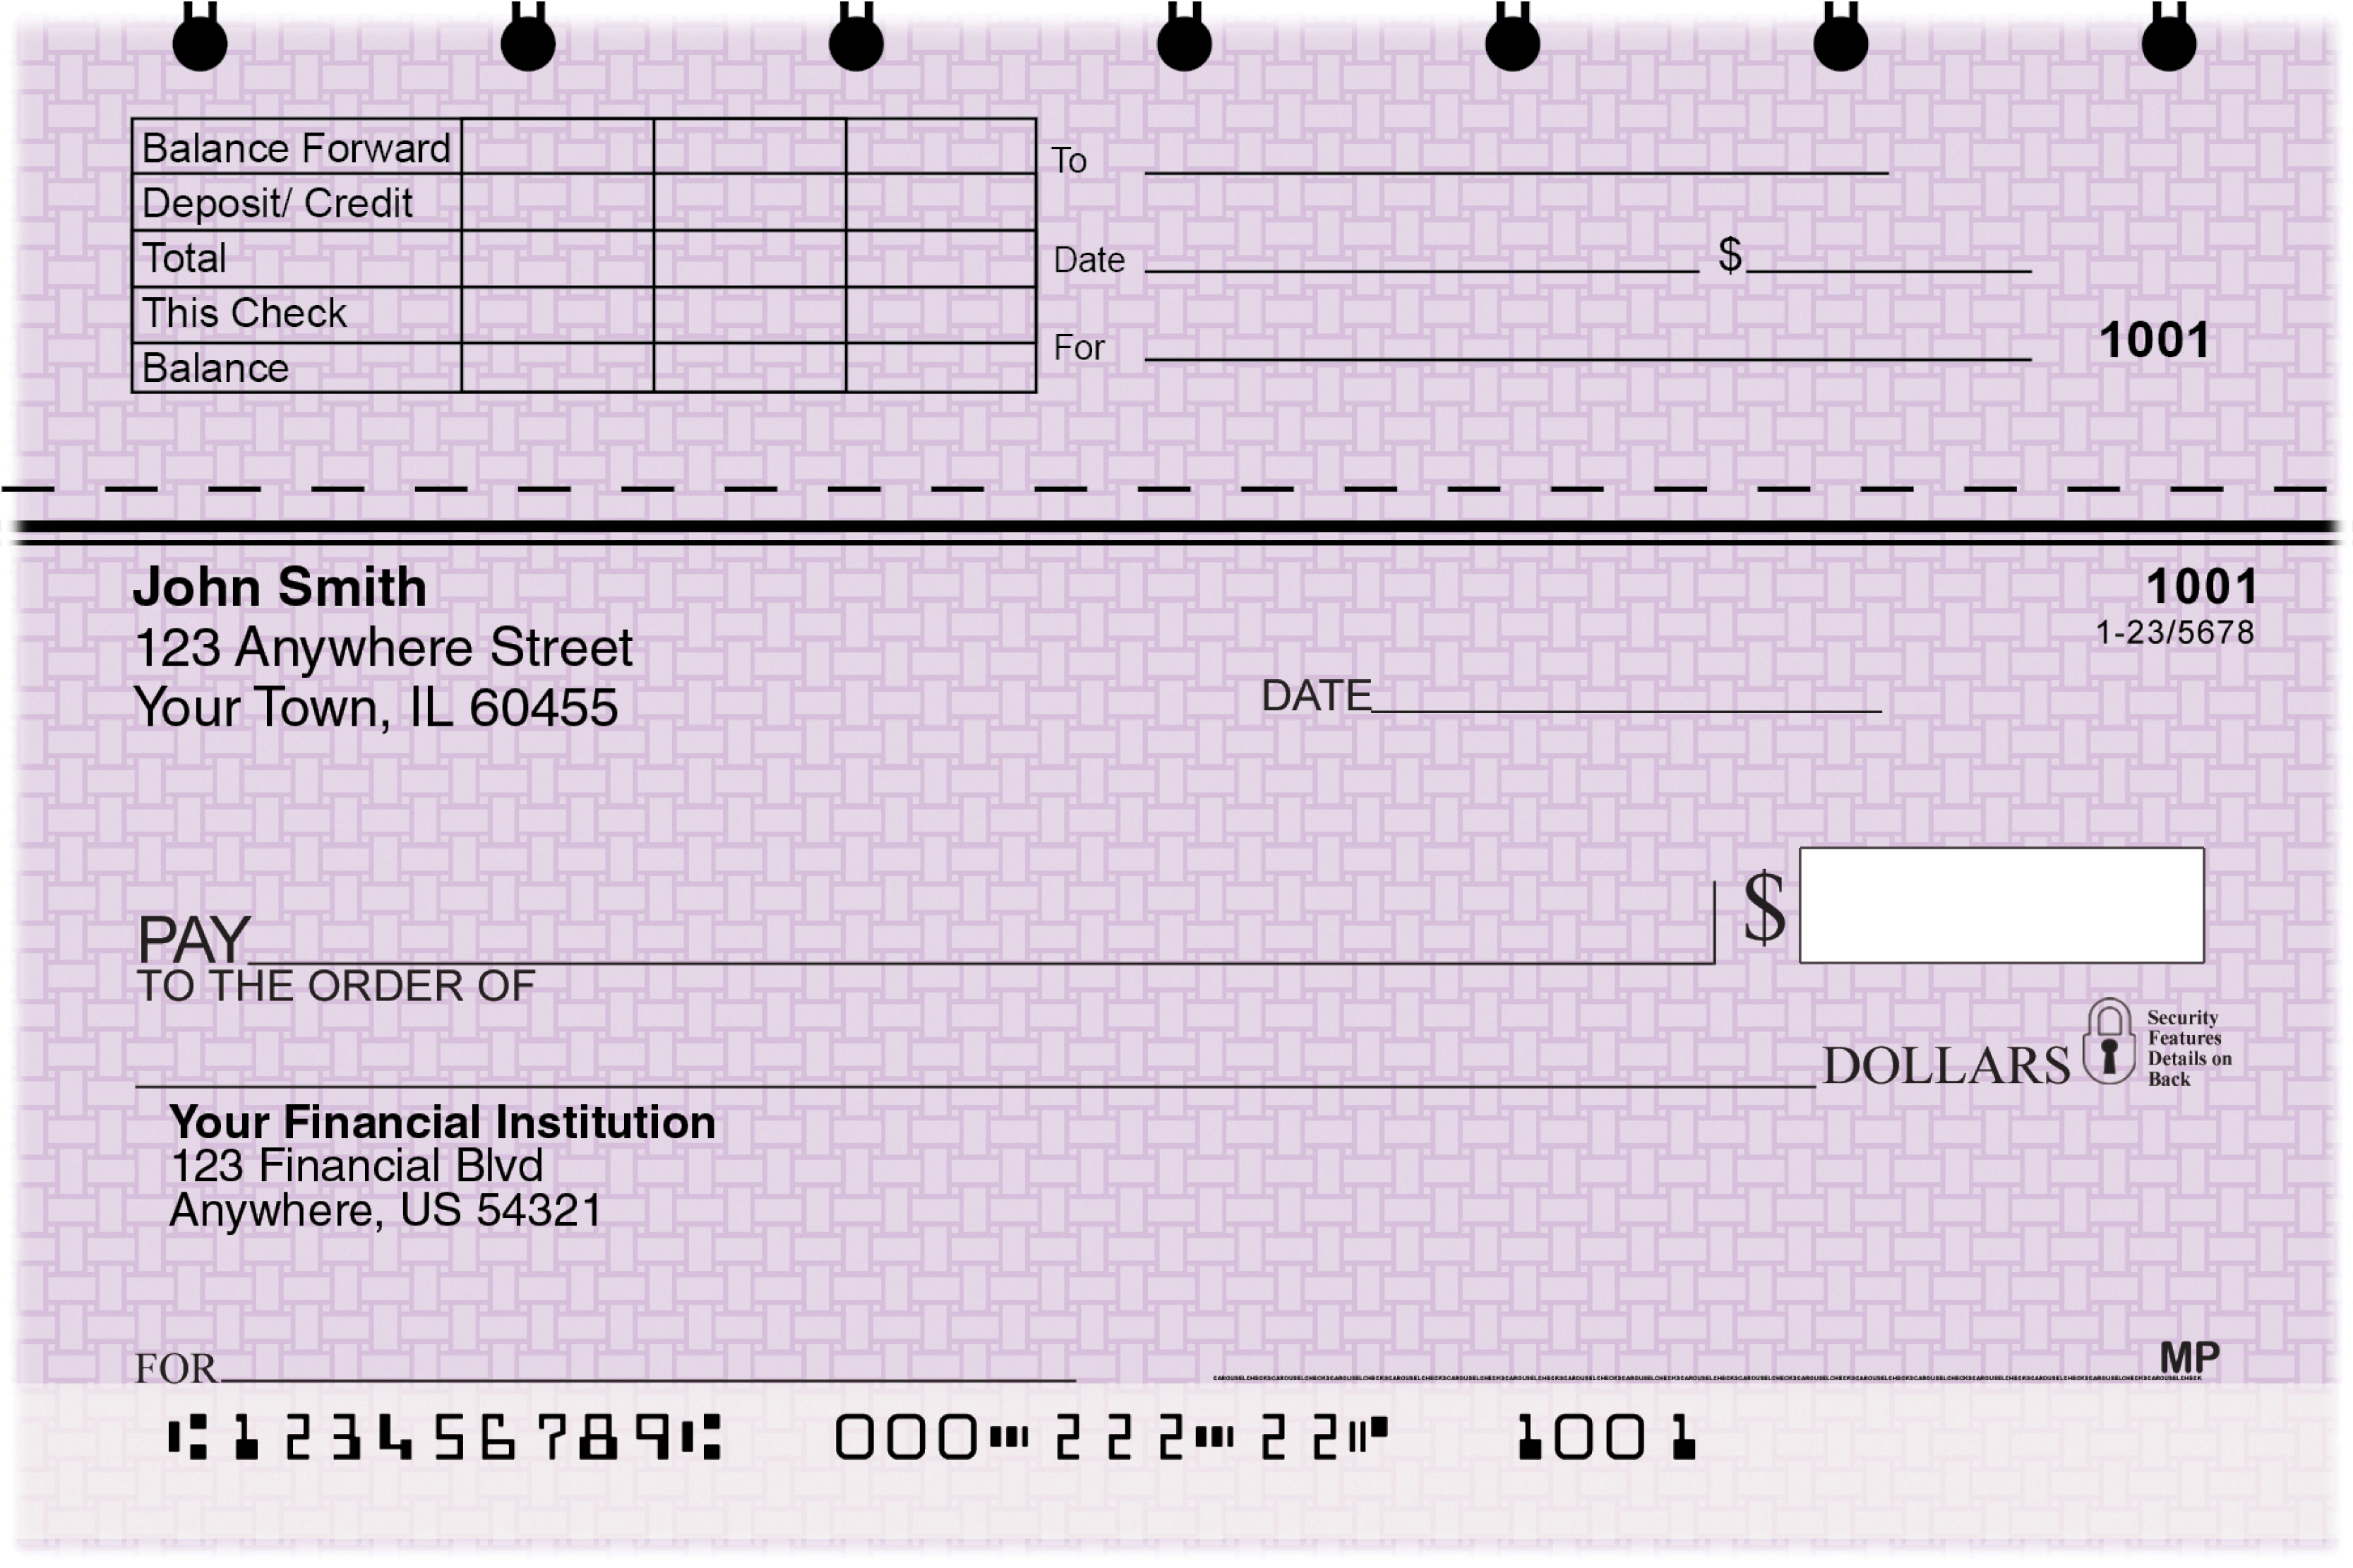 Purple Safety Top Stub Personal Checks